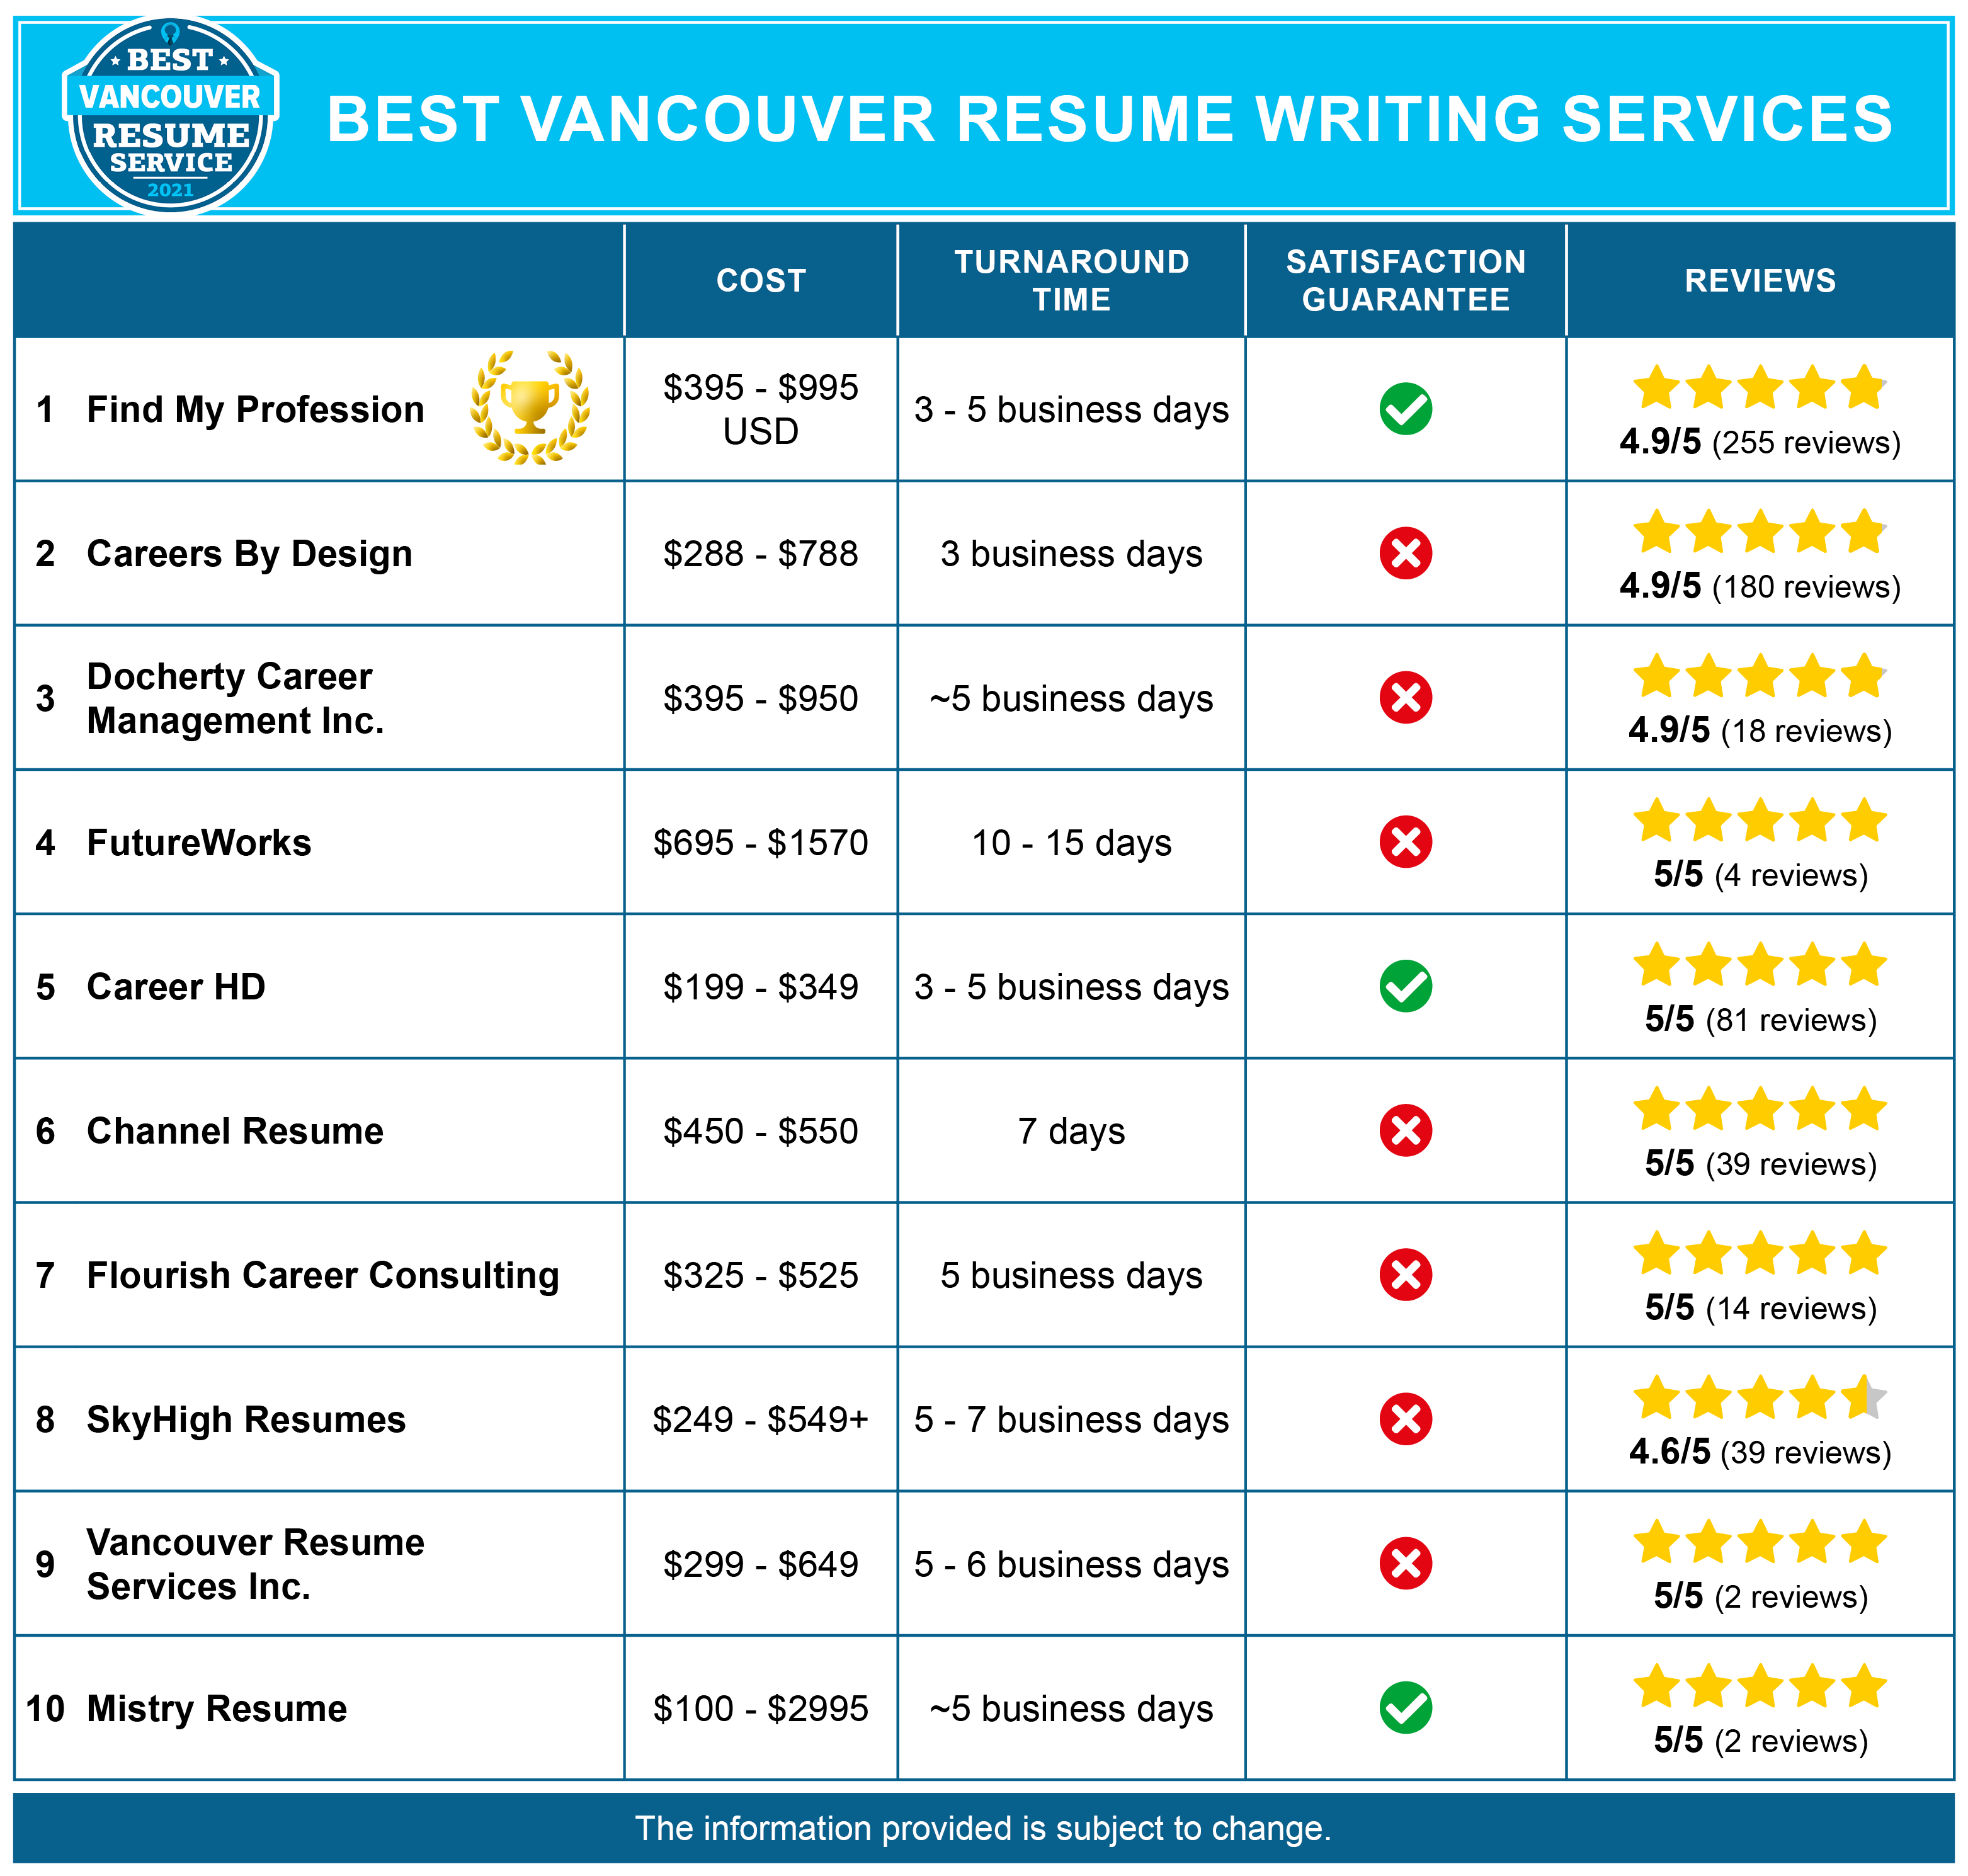 Best Vancouver Resume Services